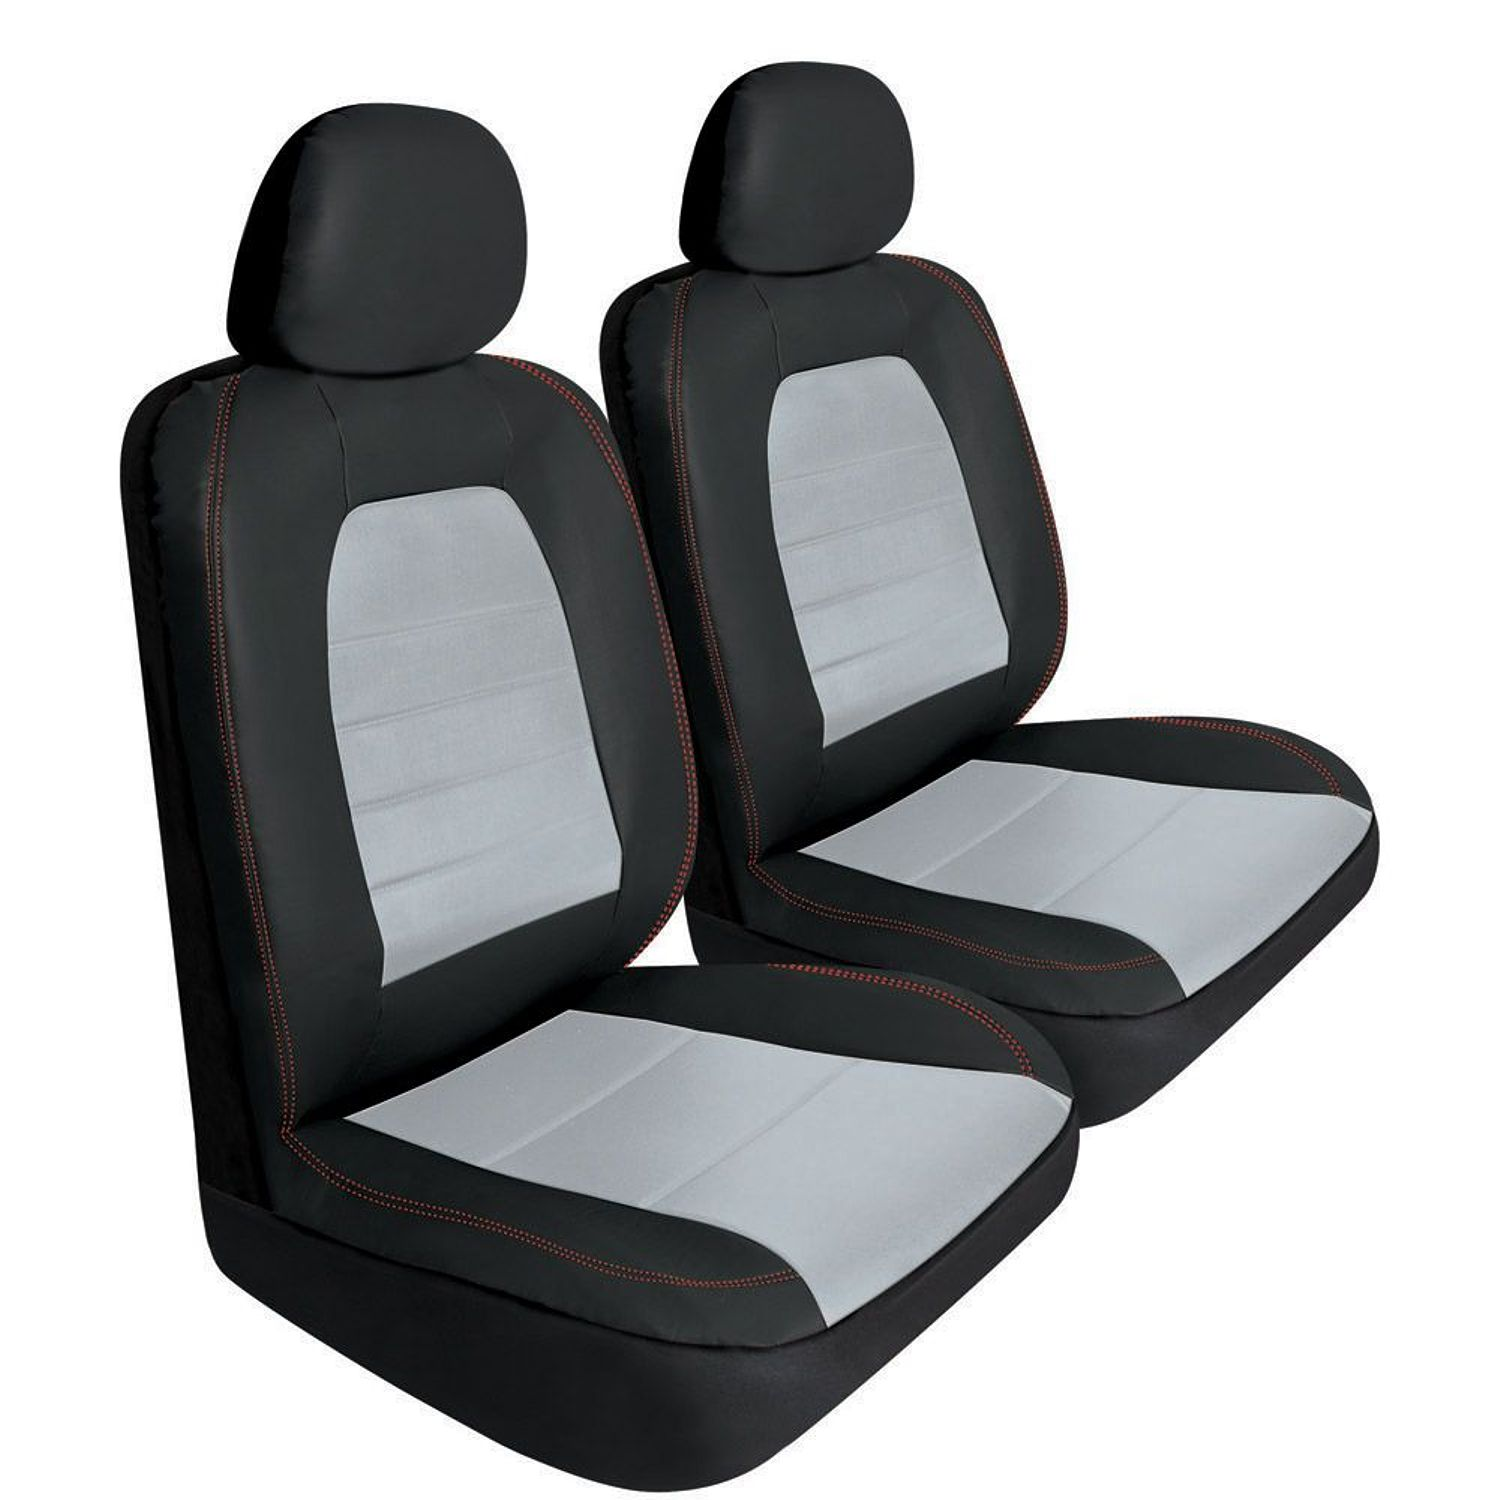 6 Piece Set Super Sport Synthetic Leather Car Auto Seat Cover   Black/Gray